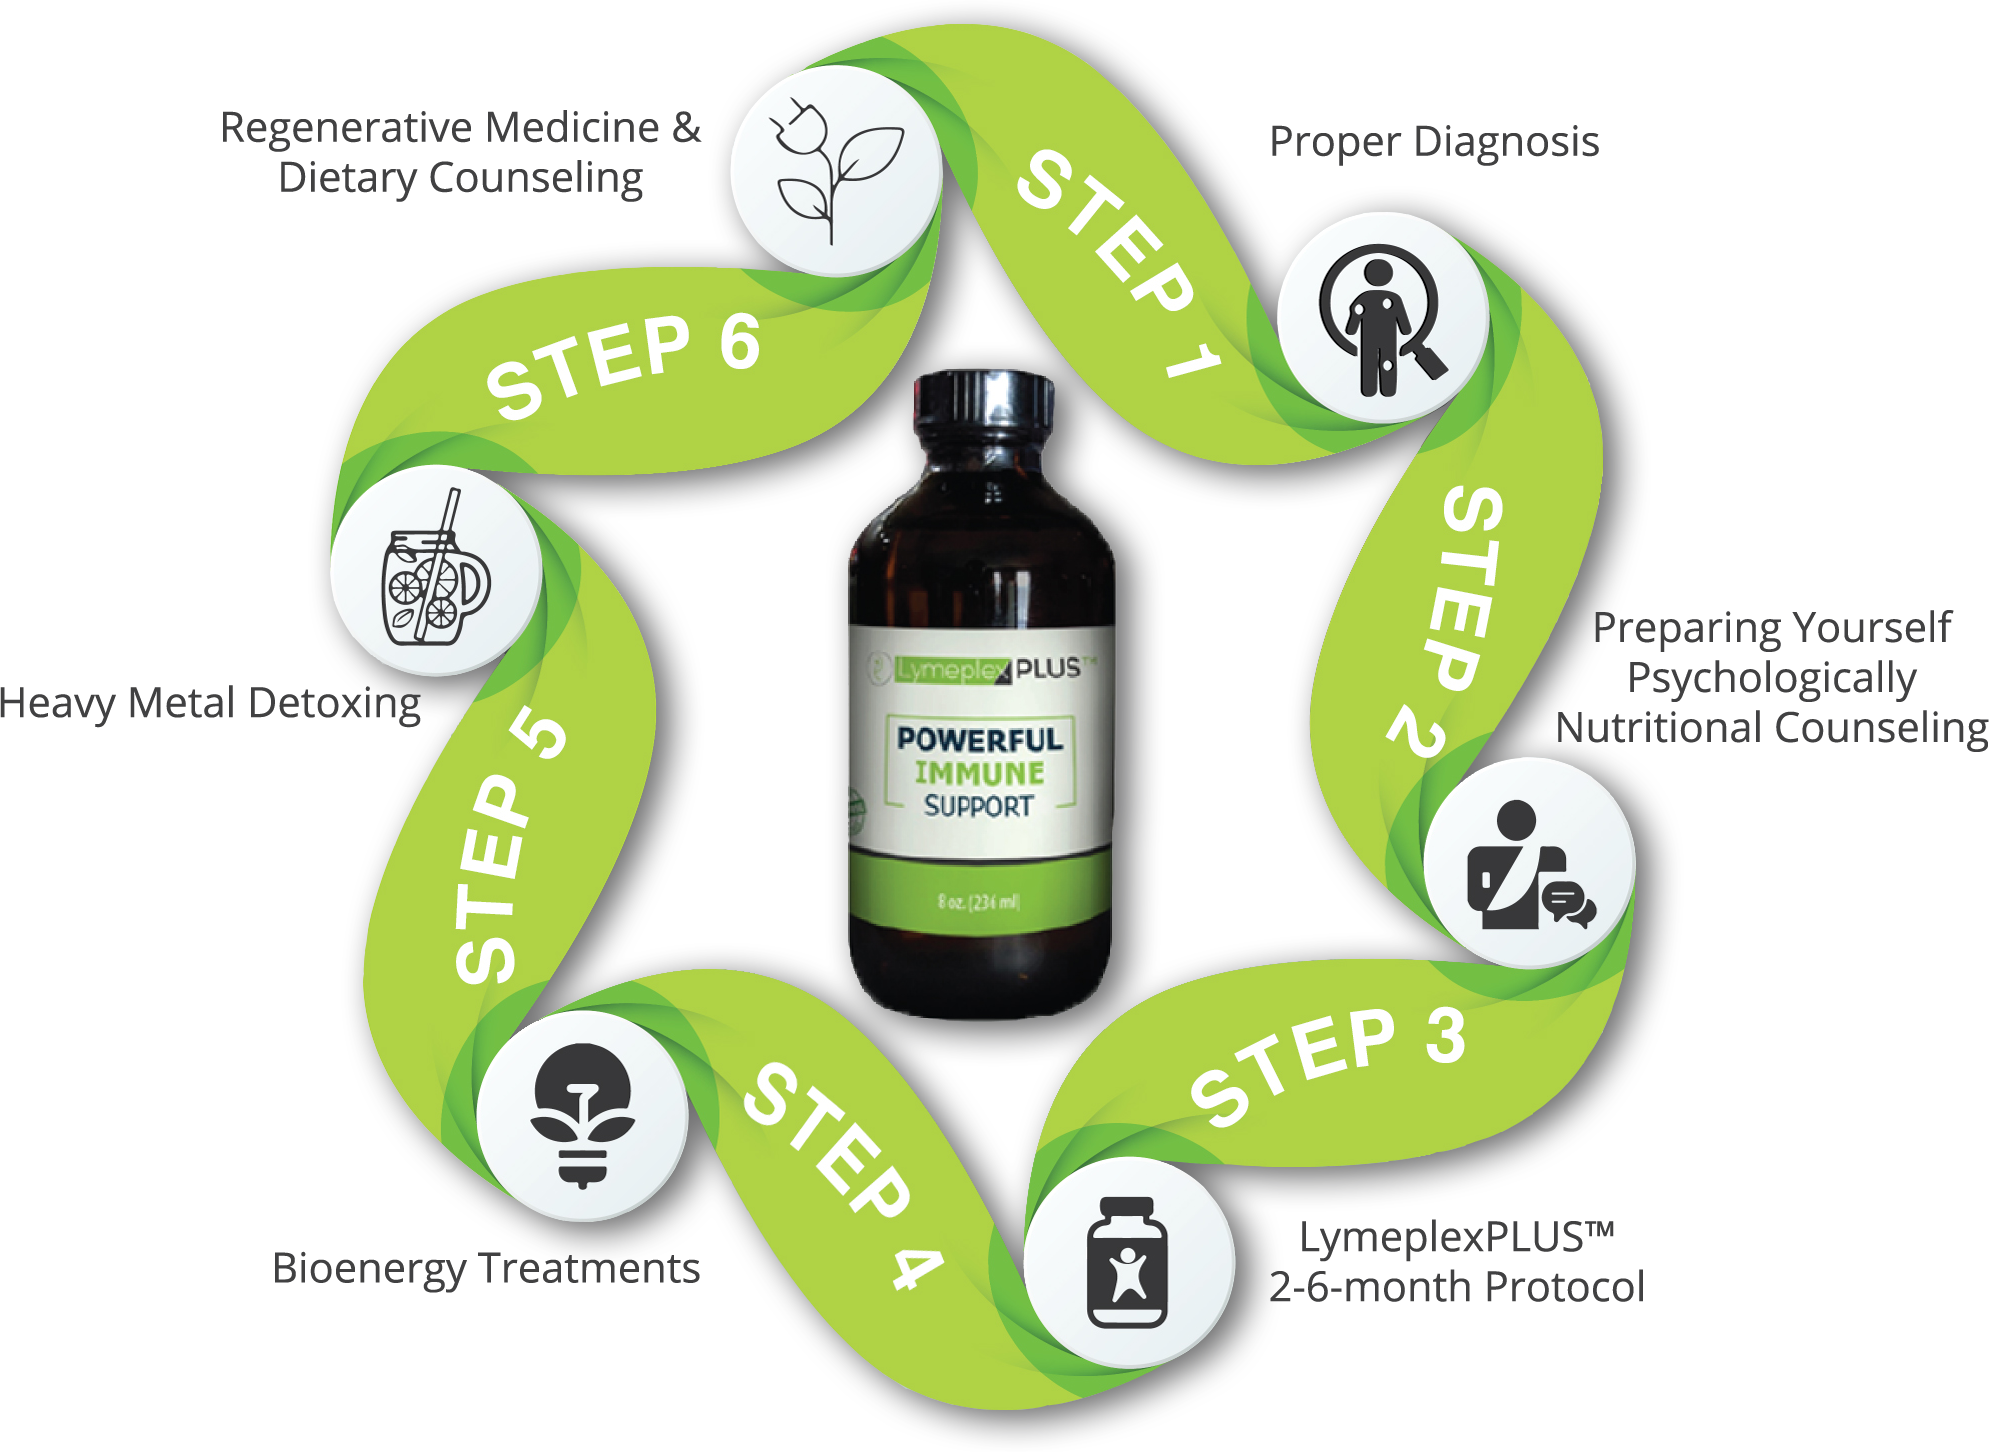 LymeplexPLUS 6-step protocol radial graphic with LymeplexPLUS bottle in the center - transparent background